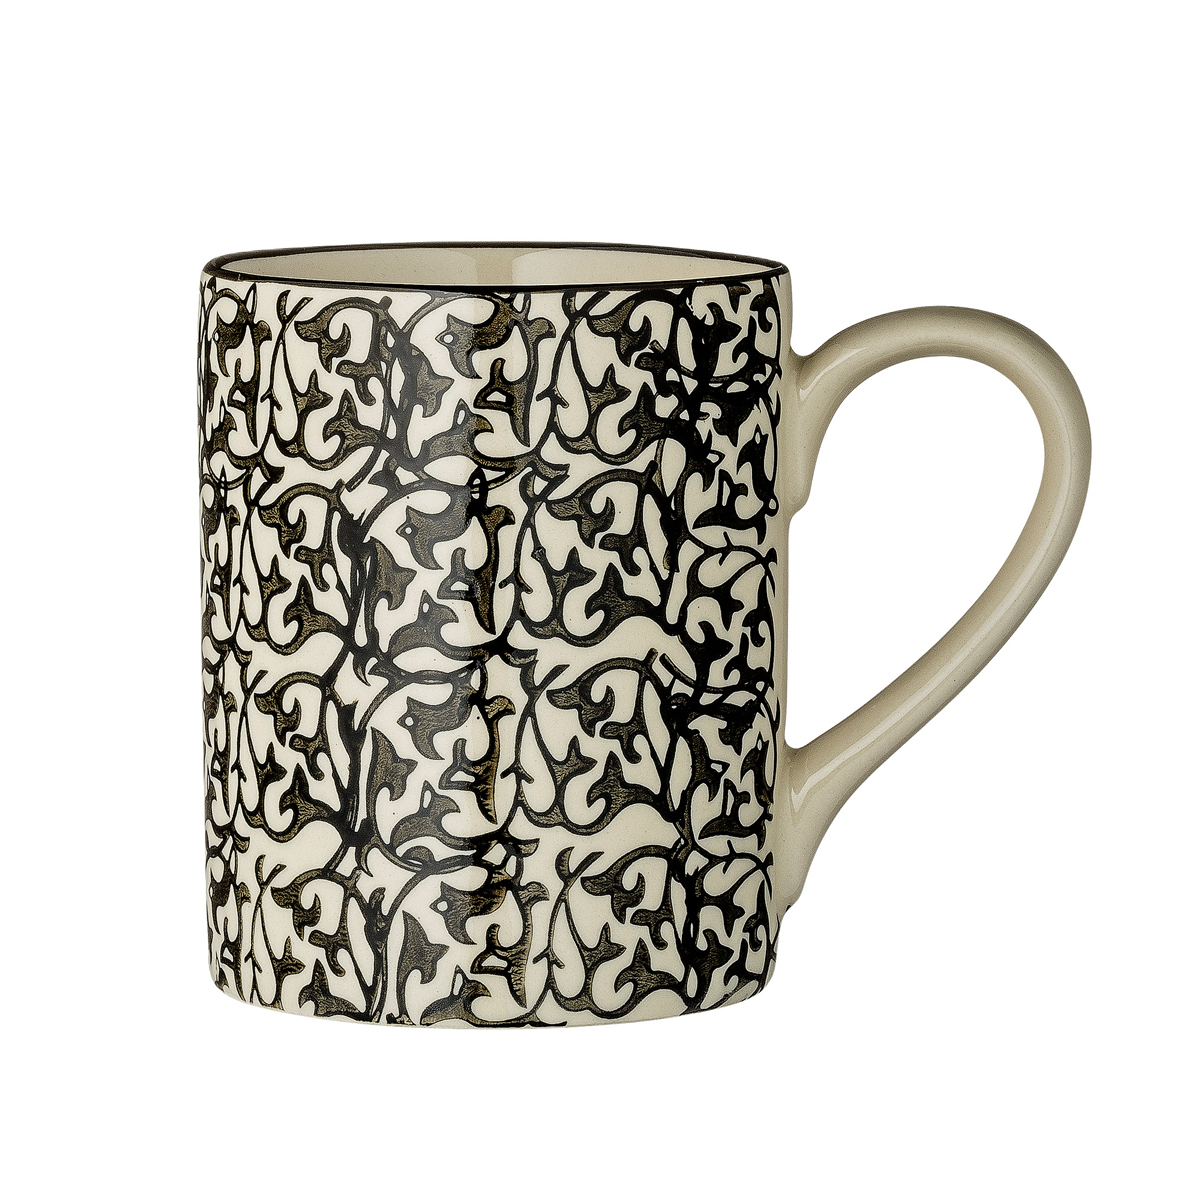 manda-mug-day-home-birger-et-mikkelsen